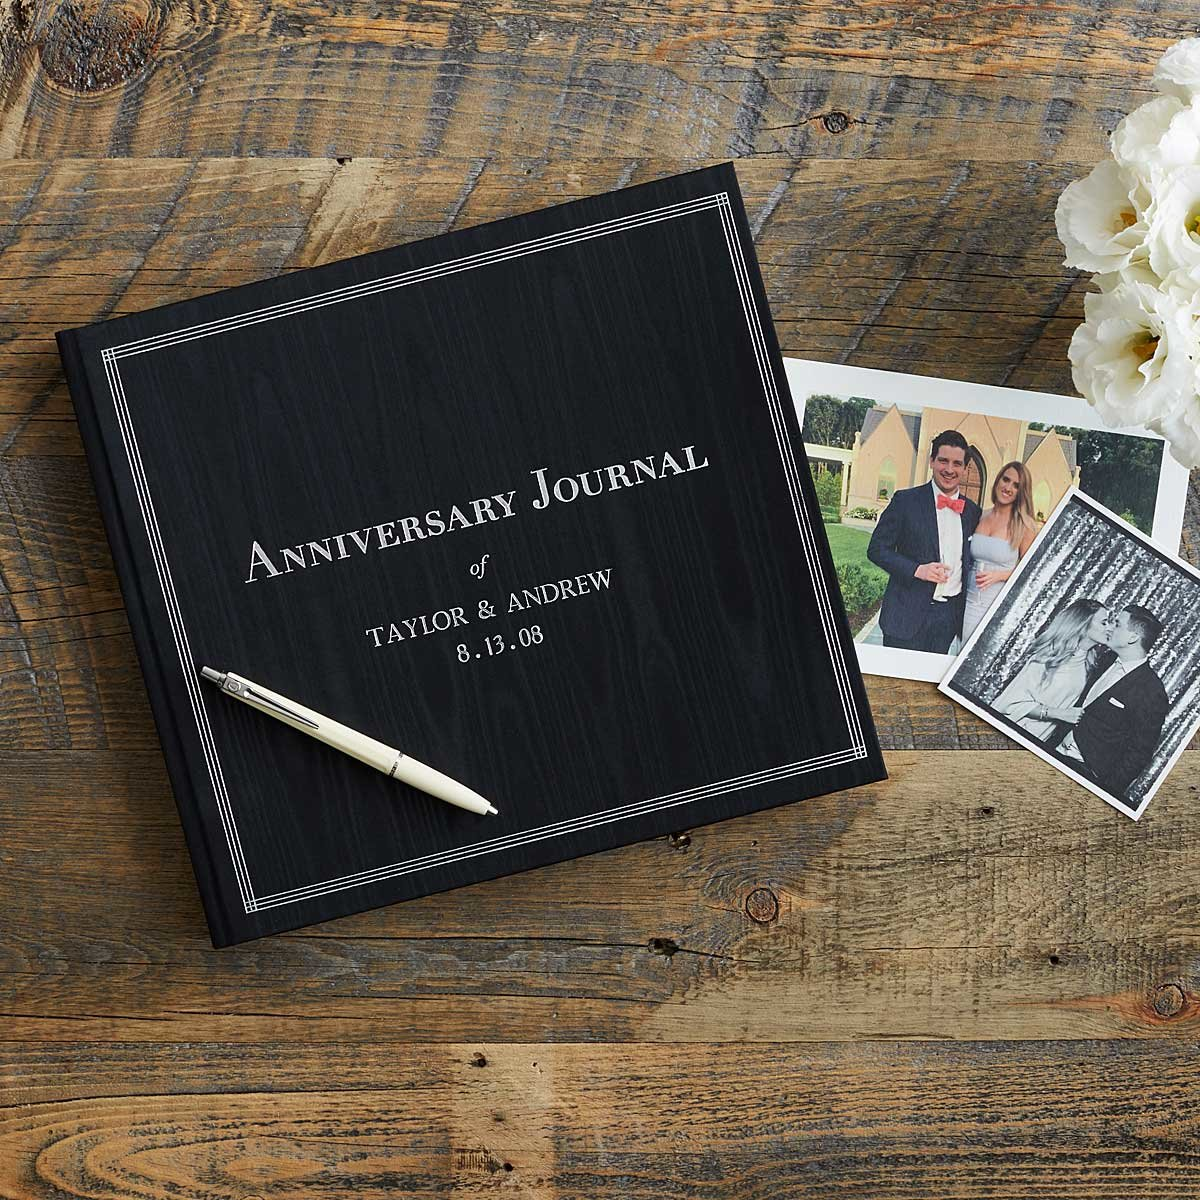 for the couple wedding gift Customizable The Personalized Anniversary Journal